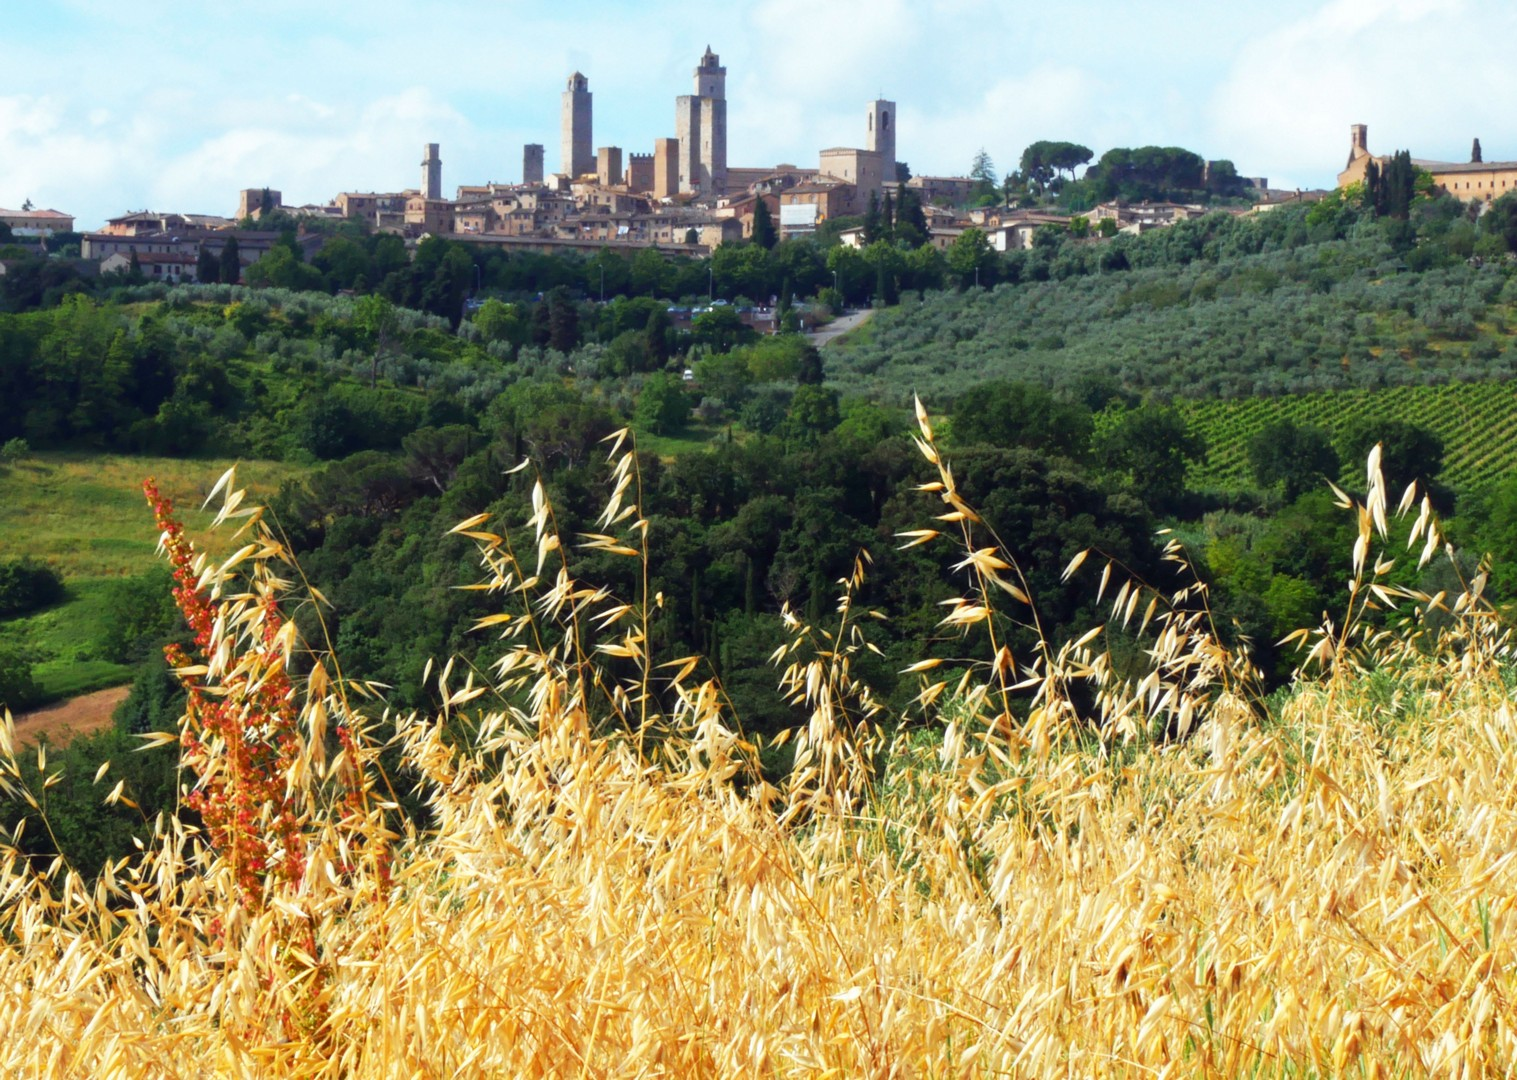 san-gim-corn-field-tuscany-cycling.jpg - Italy - Tuscany Tourer - Self Guided Road Cycling Holiday - Road Cycling